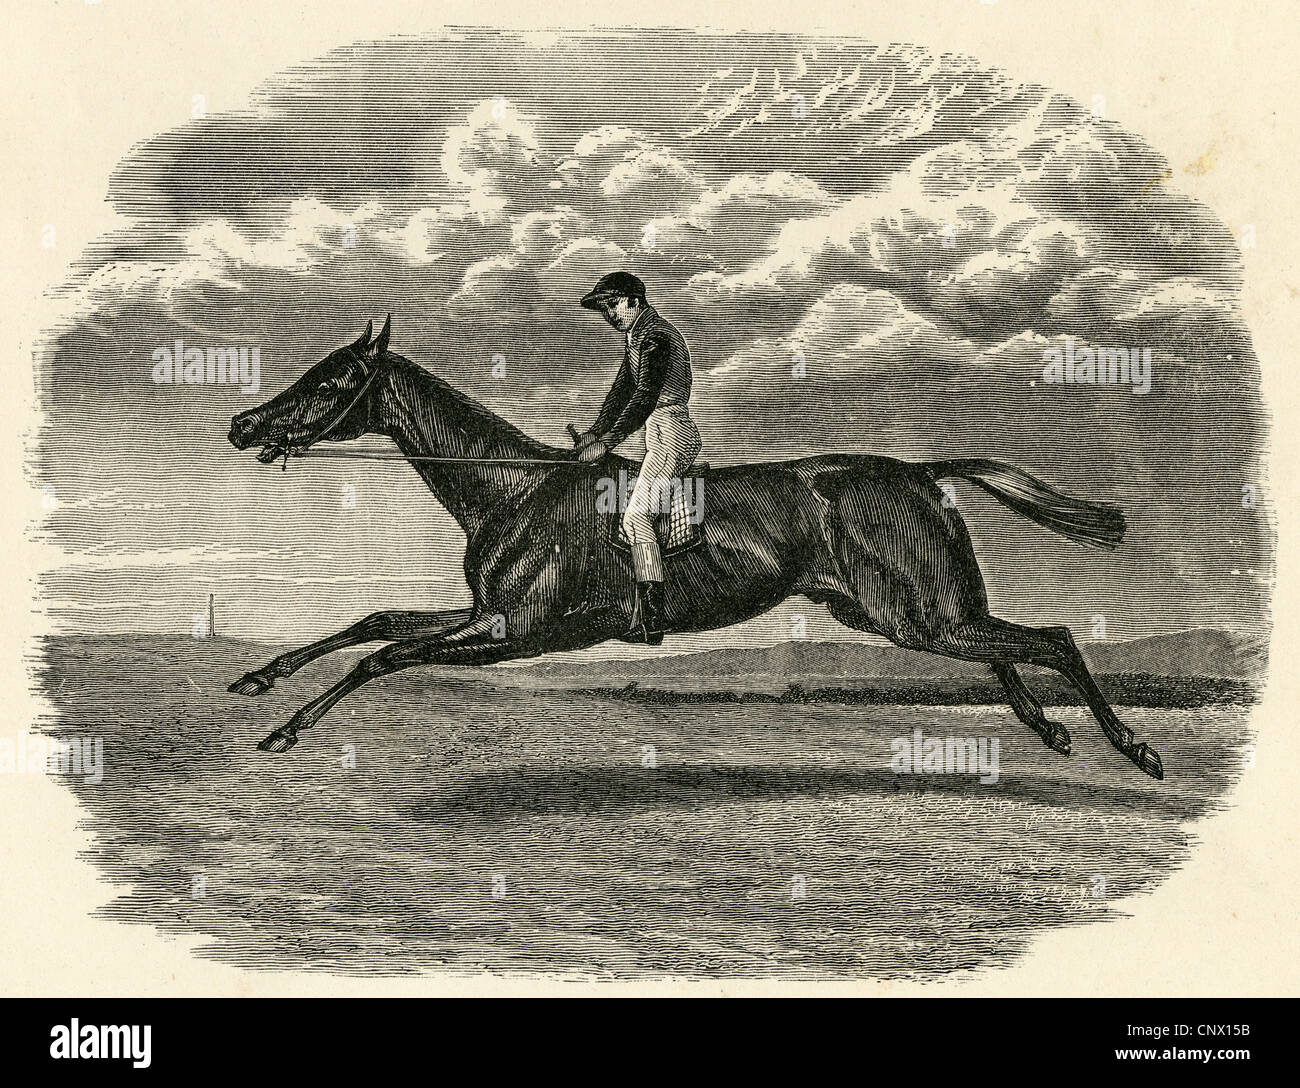 1880 engraving, Sefton, Winner of the Derby Stakes at Epsome 1878. Jockey is Henry Constable 1854-1881. - Stock Image